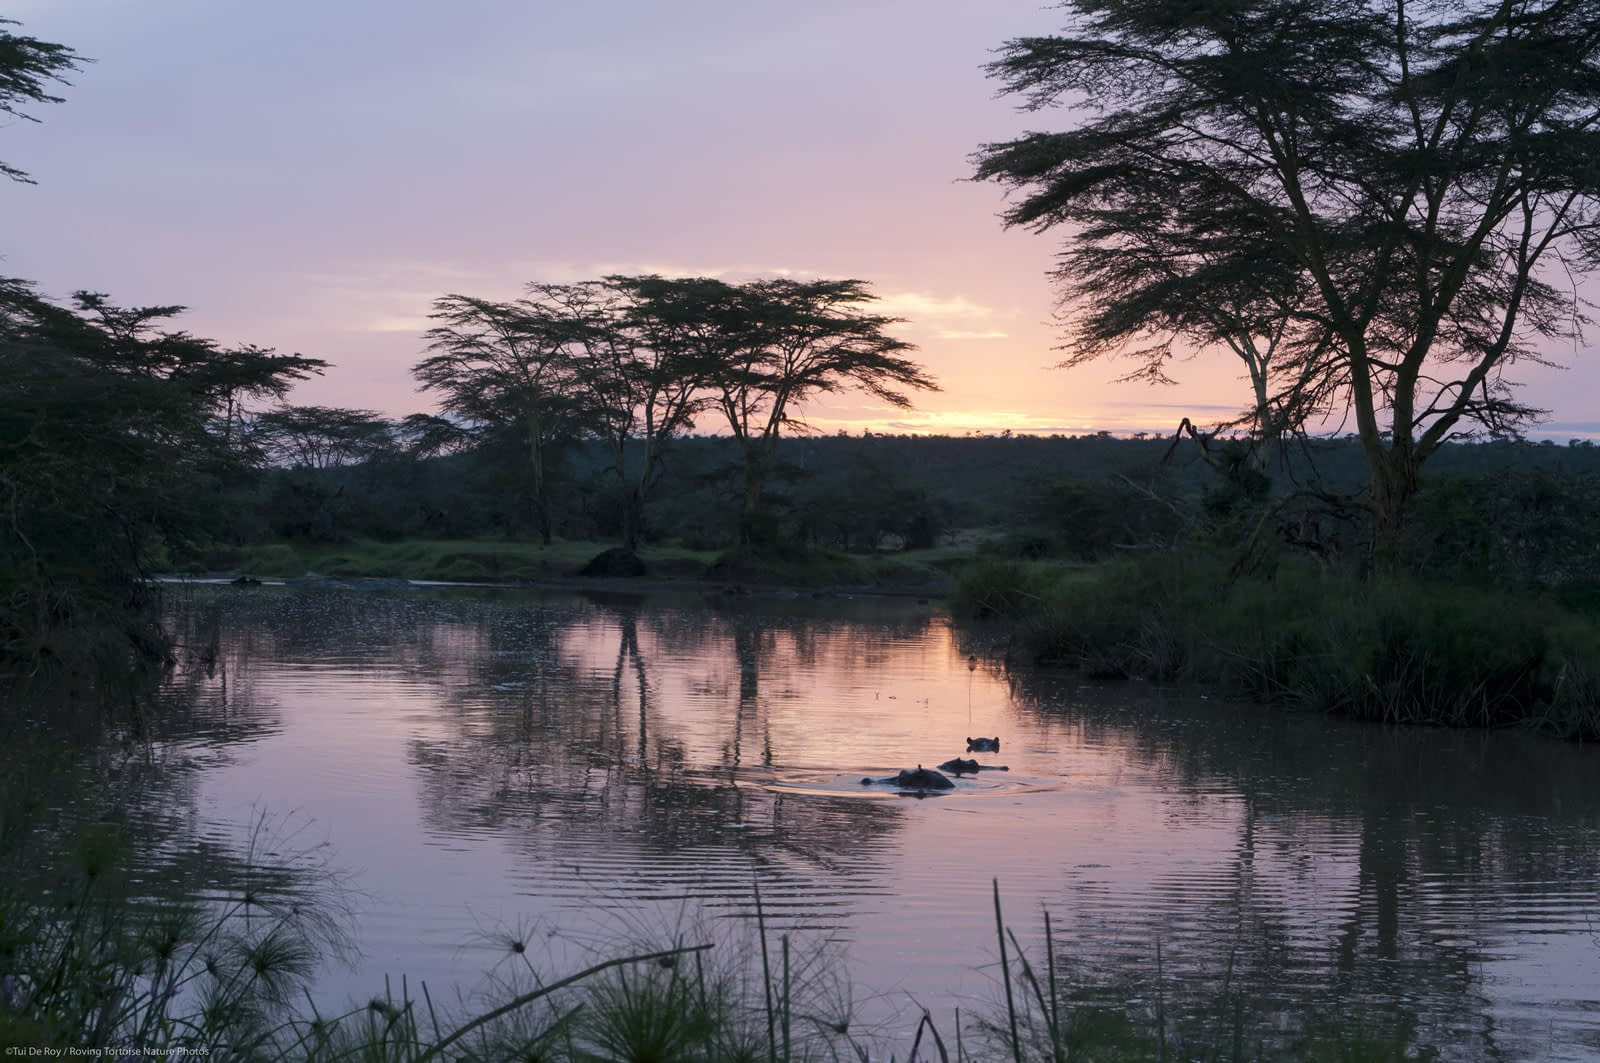 Hippos in the Sosian river at sunset